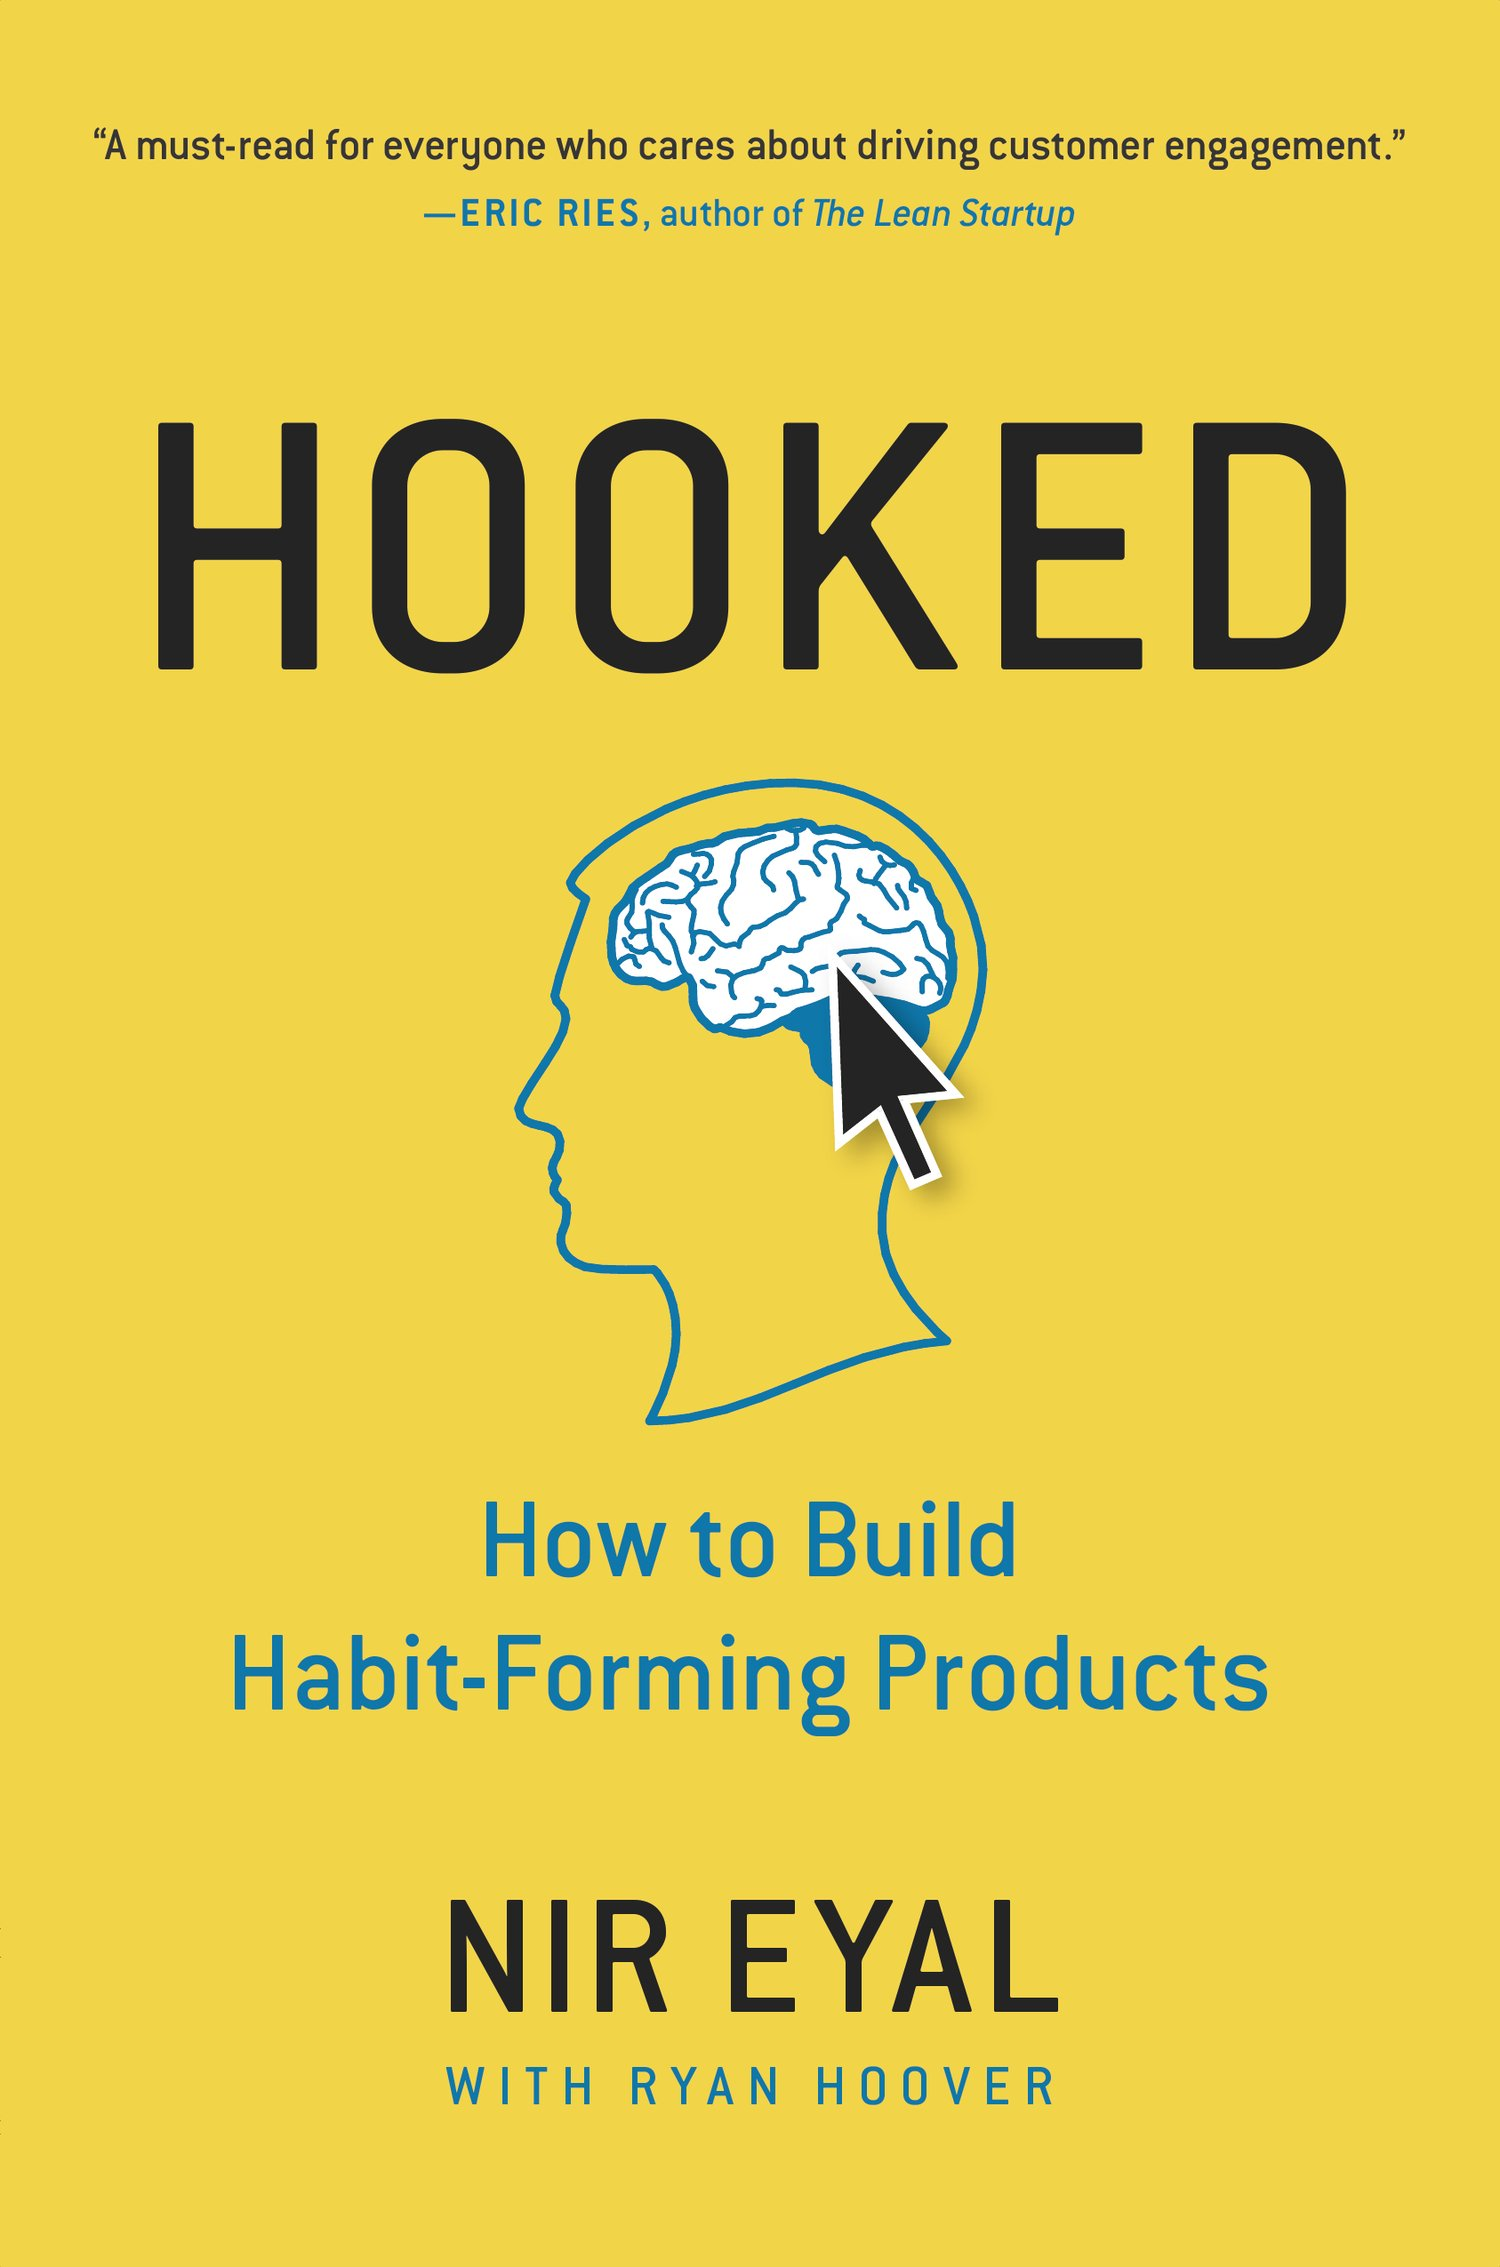 Image result for Hooked. How to Build Habit-Forming Products by Nir Eyal